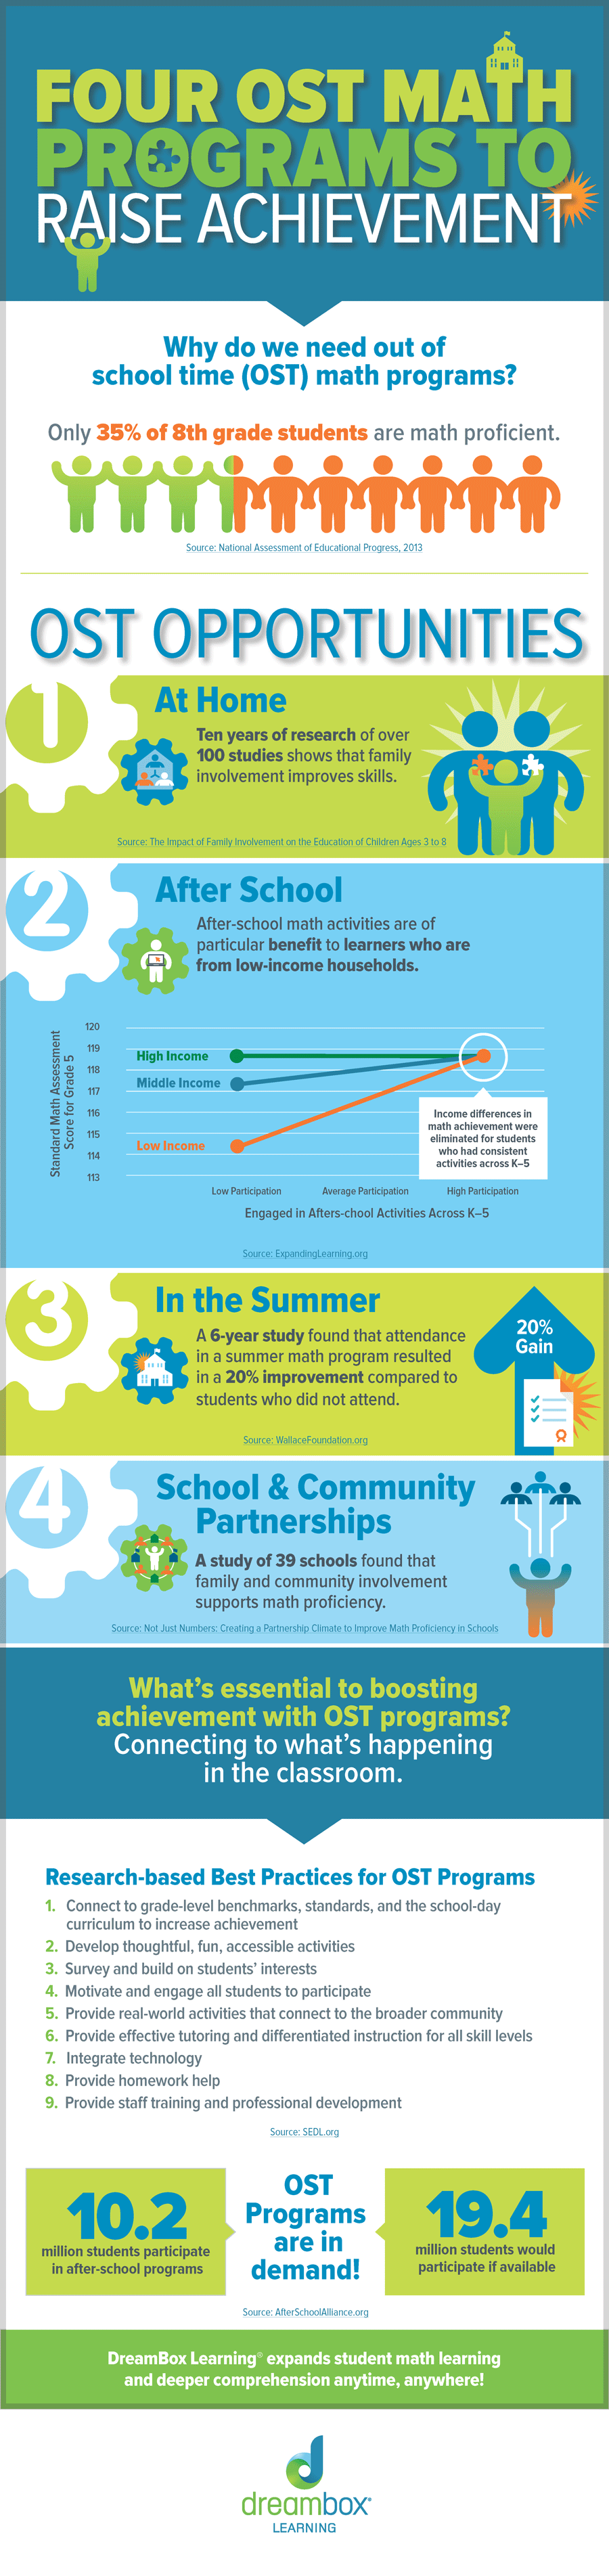 The Benefits of Out of School Math Programs Infographic ...